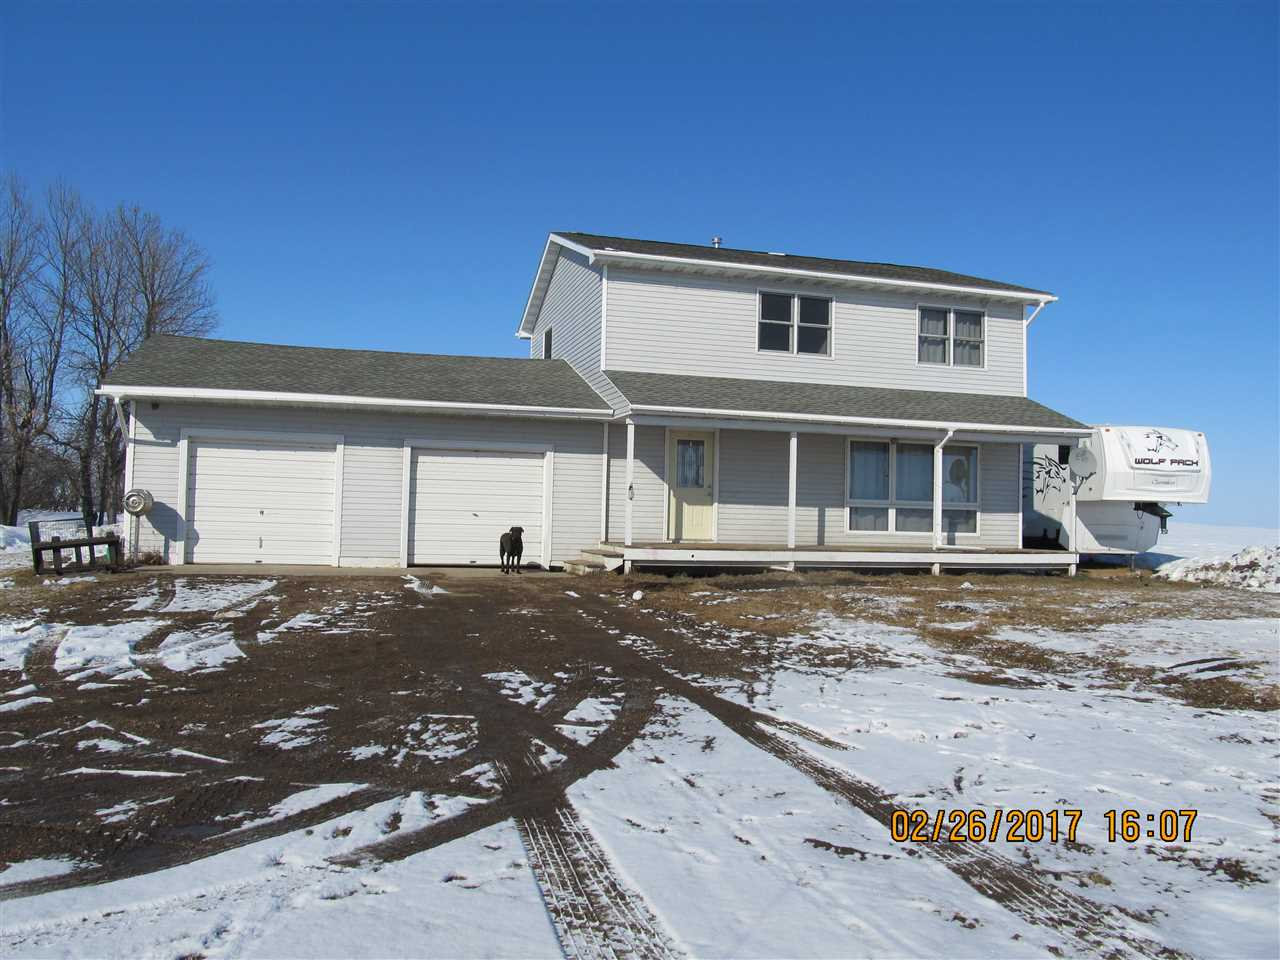 20500 NE 97th st, Glenburn, ND 58740